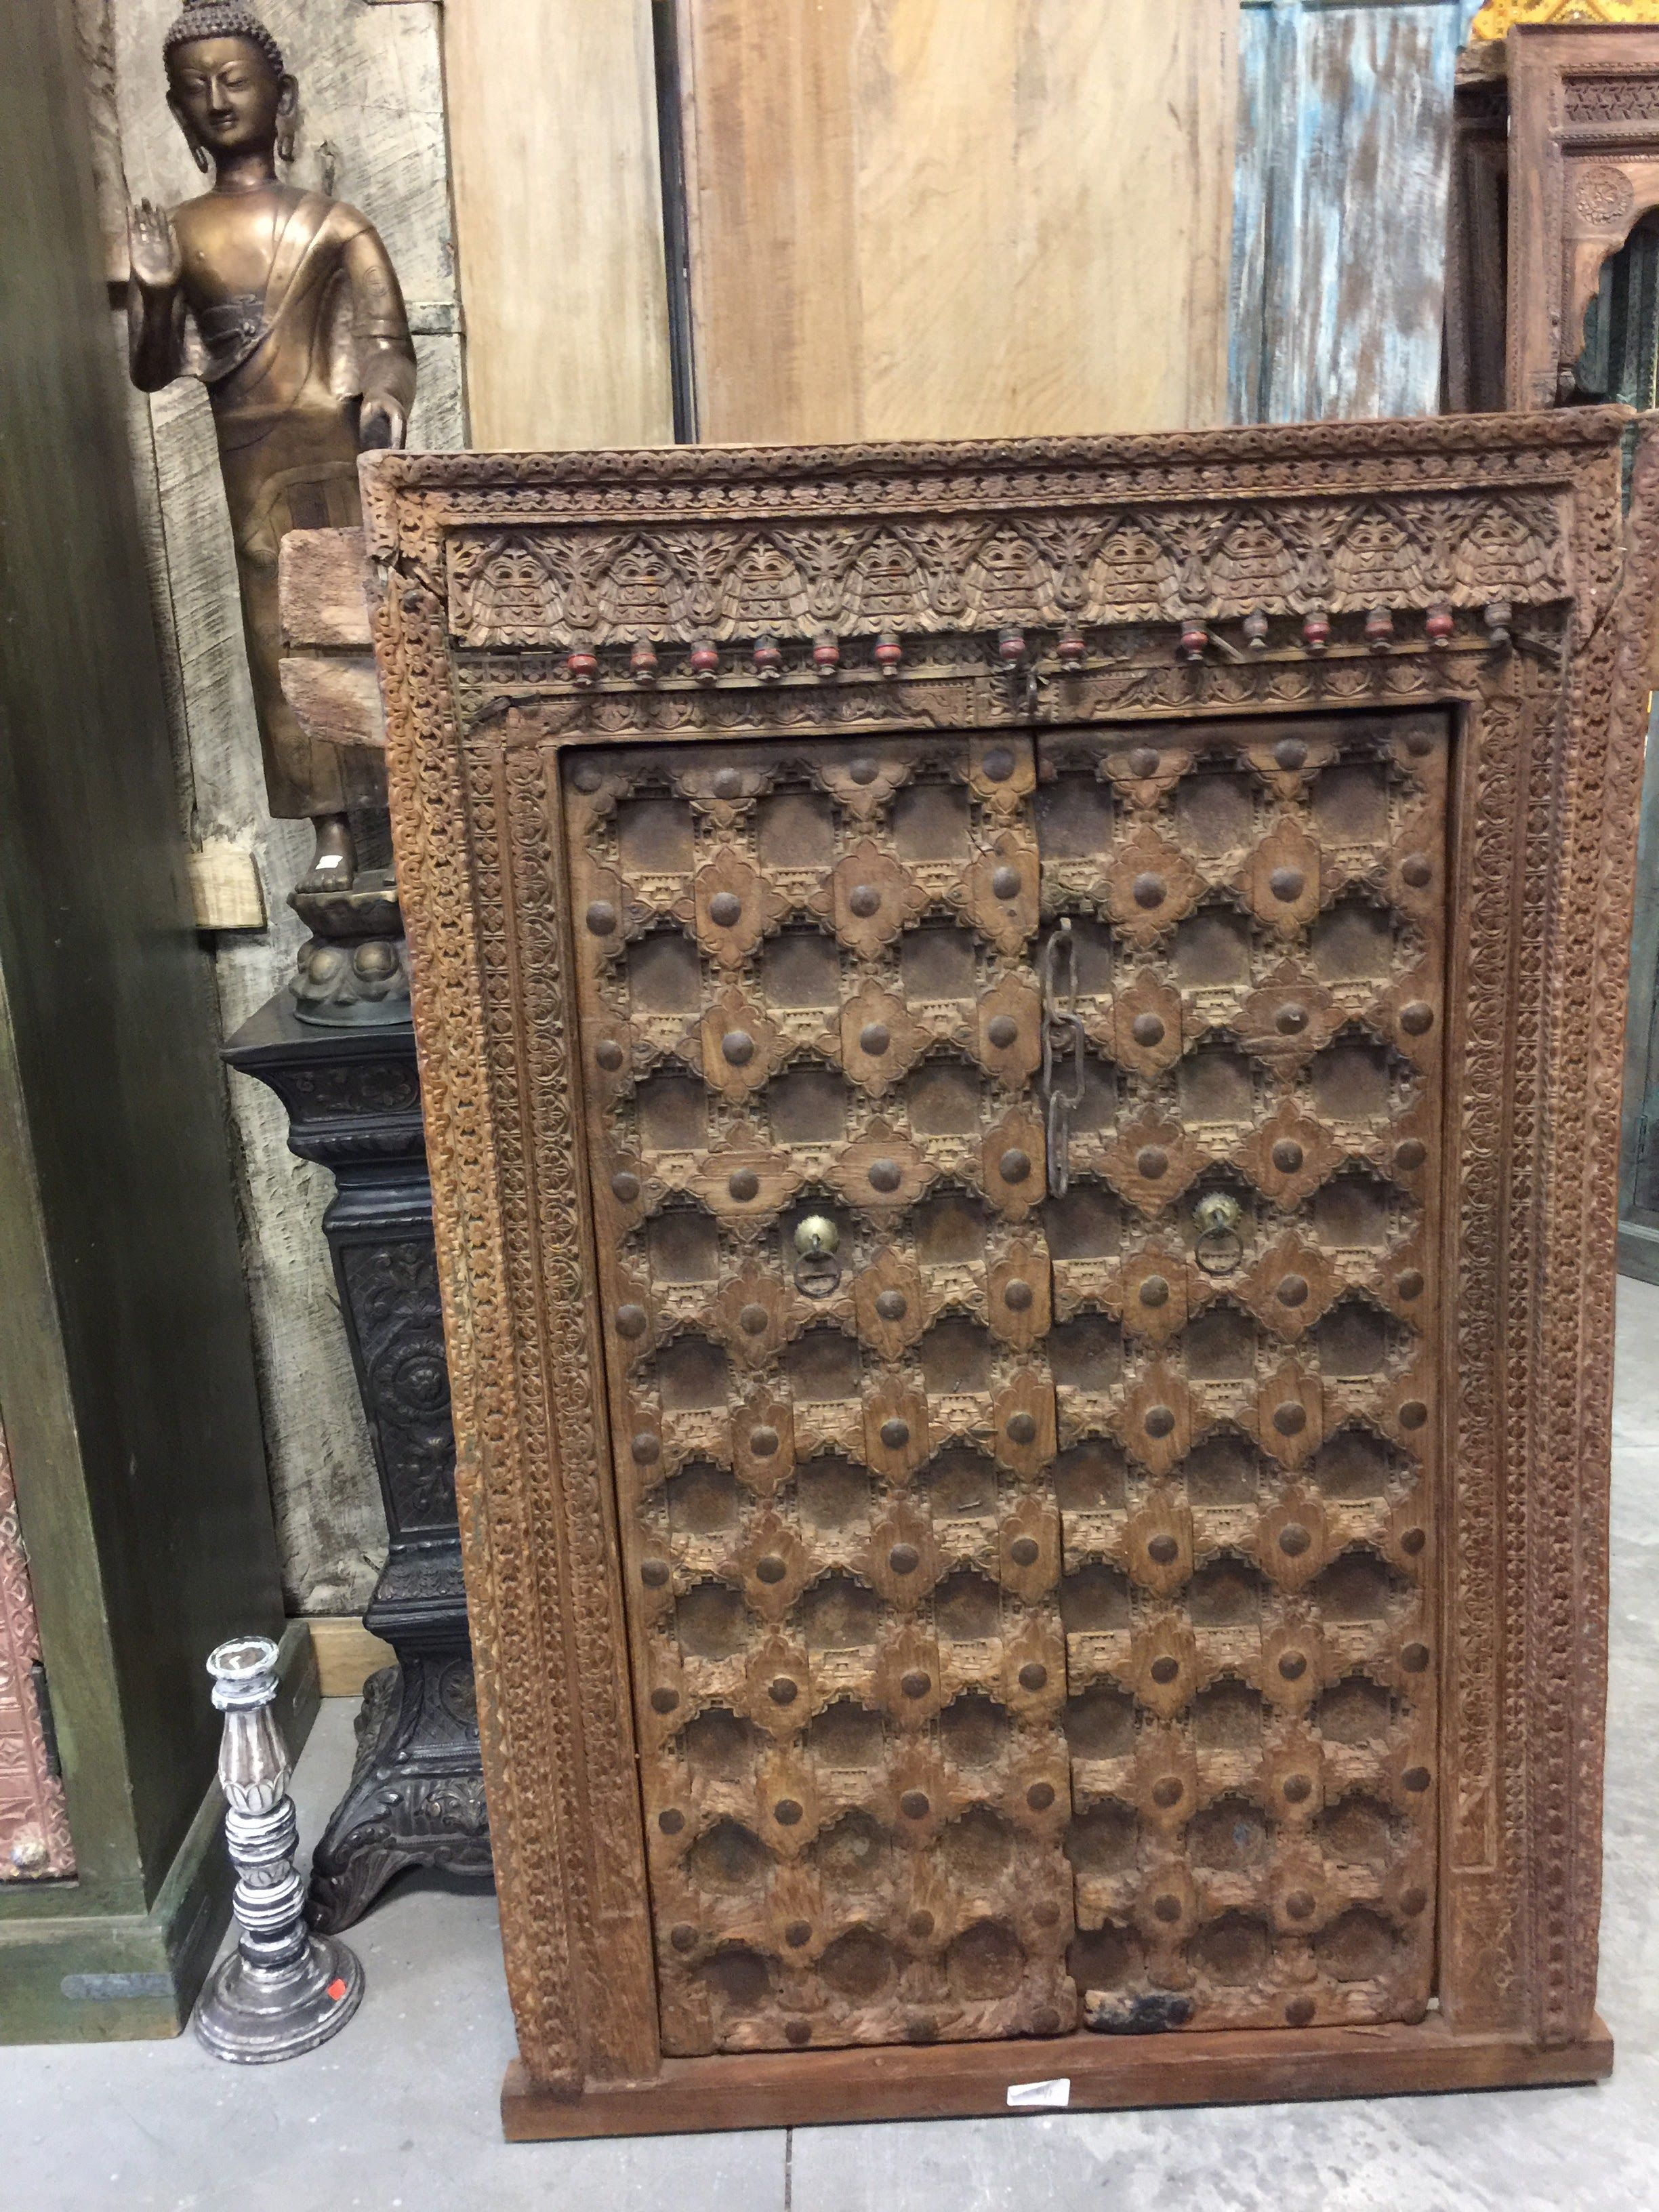 Pooja Room Door Carving Designs Google Search: Pin By Mogul Interior On Antique Doors (With Images